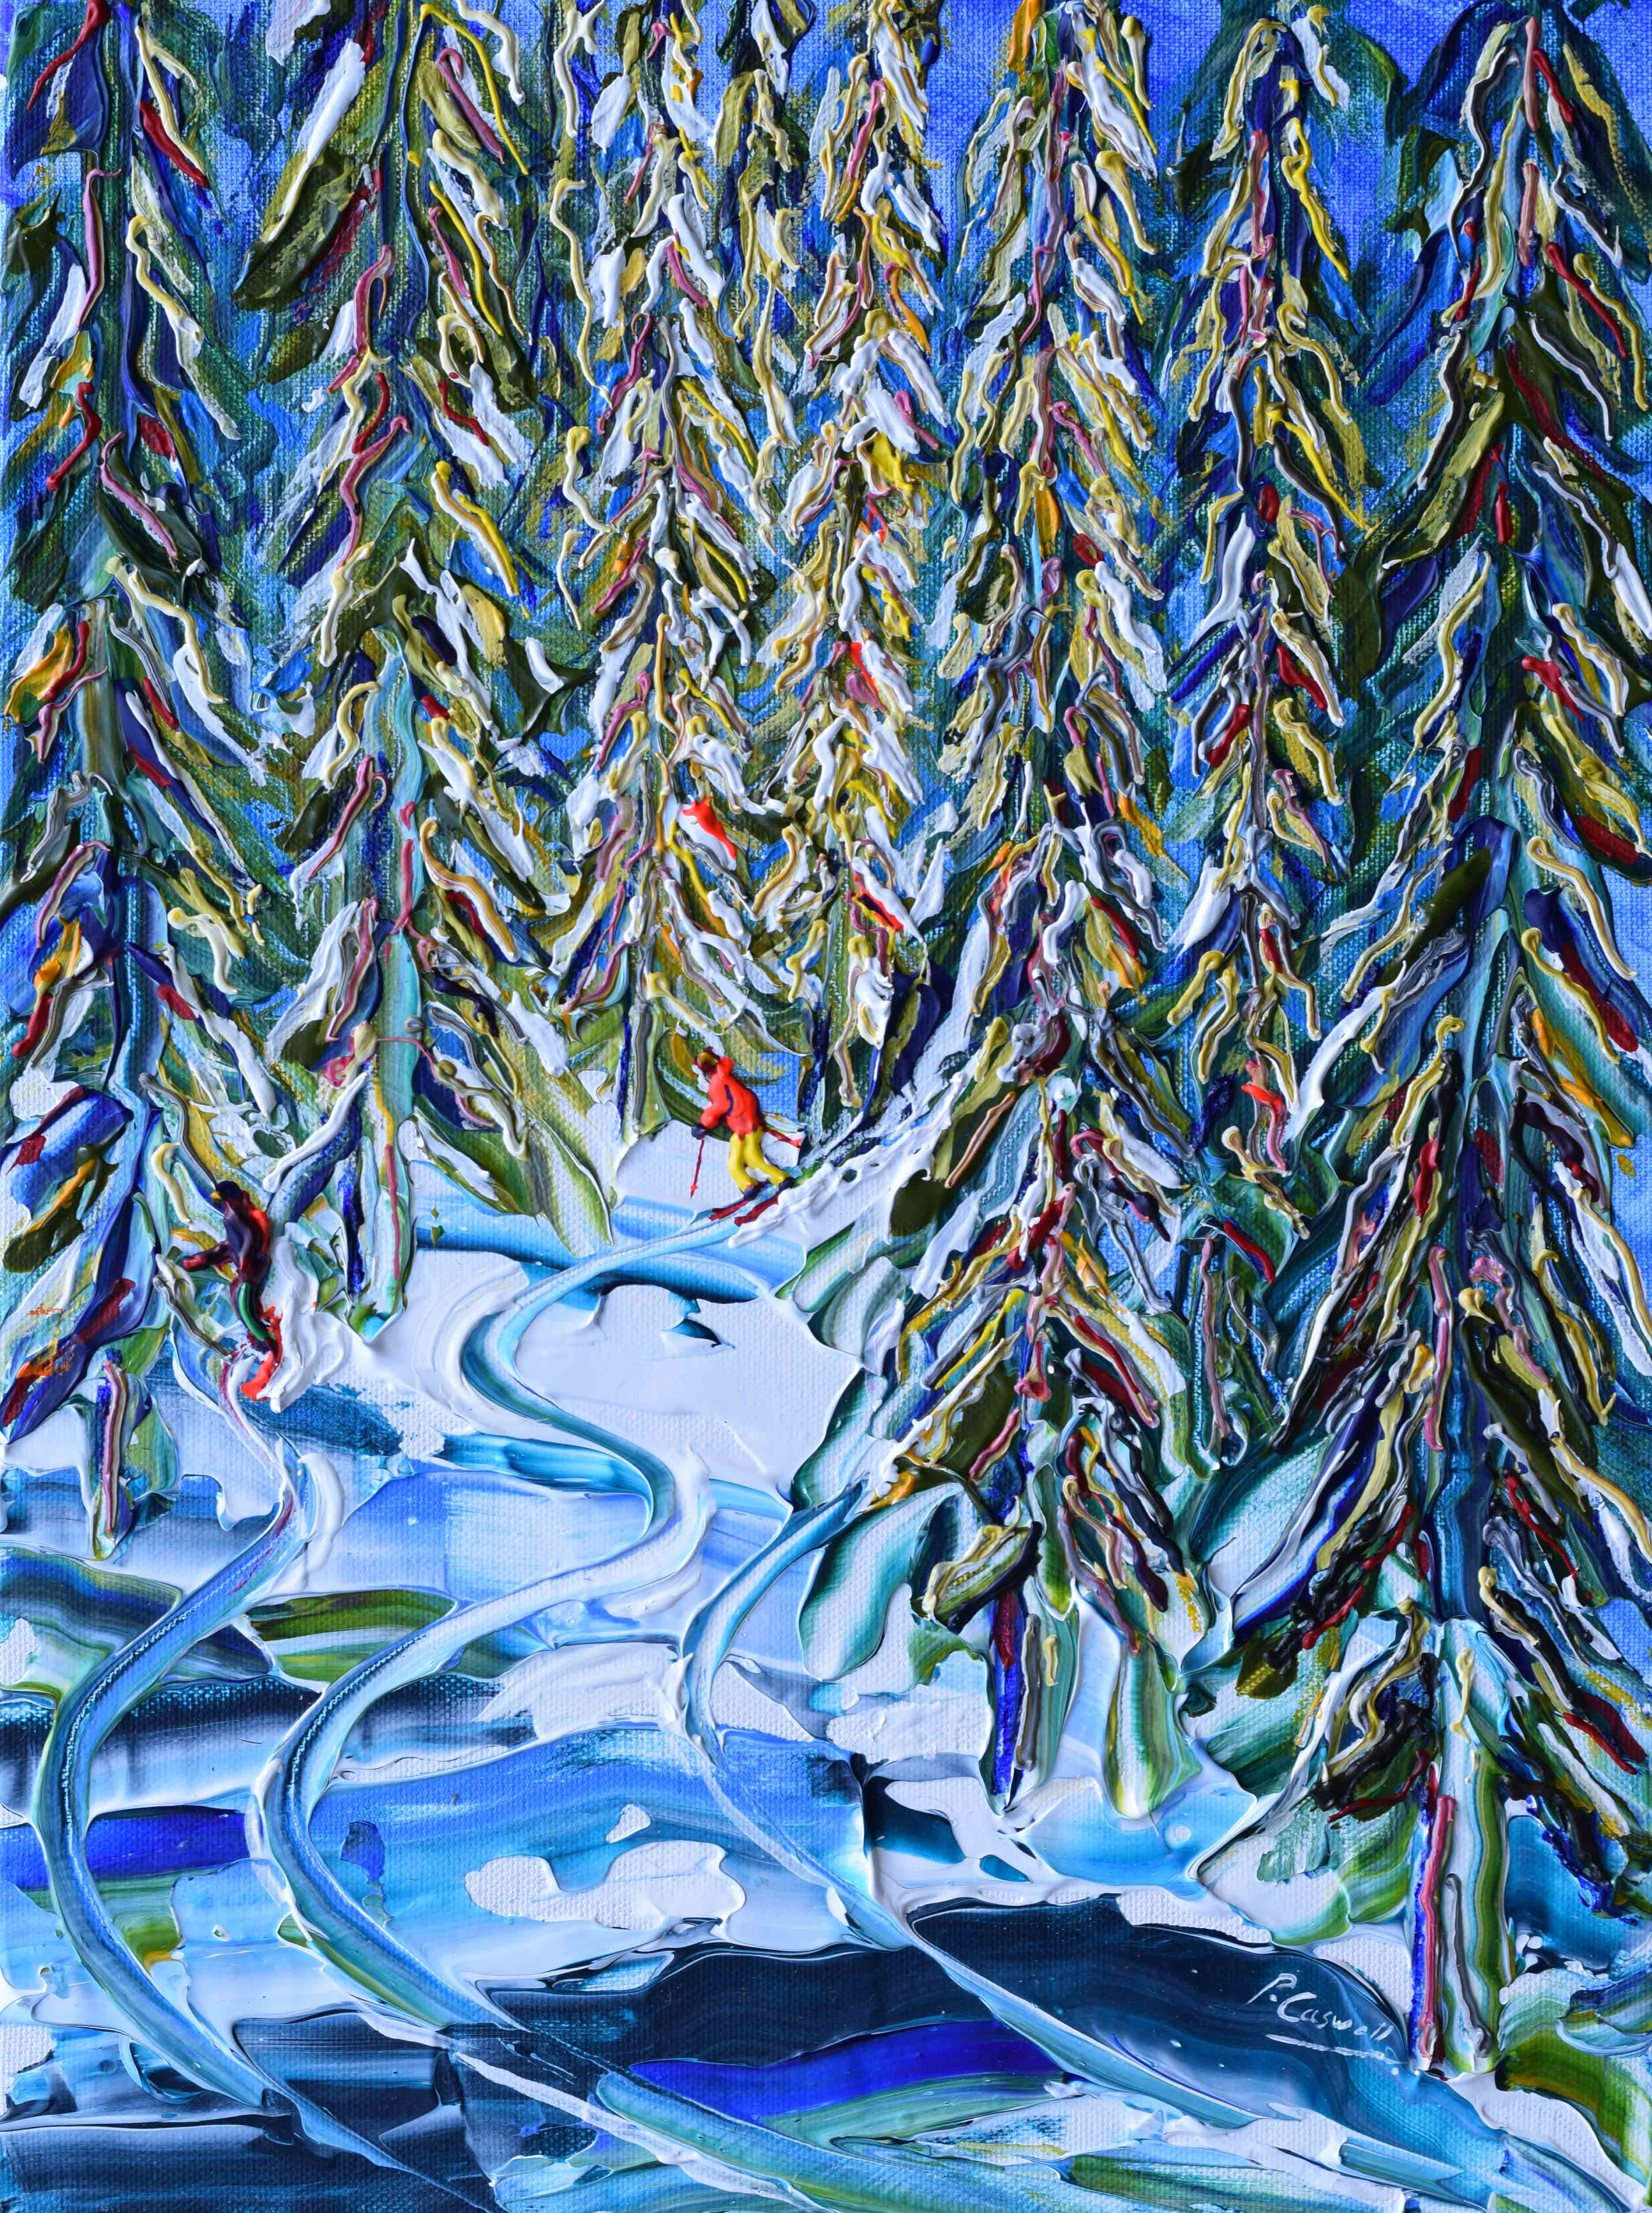 Verbier winter painting through the trees skiing and snowboarding